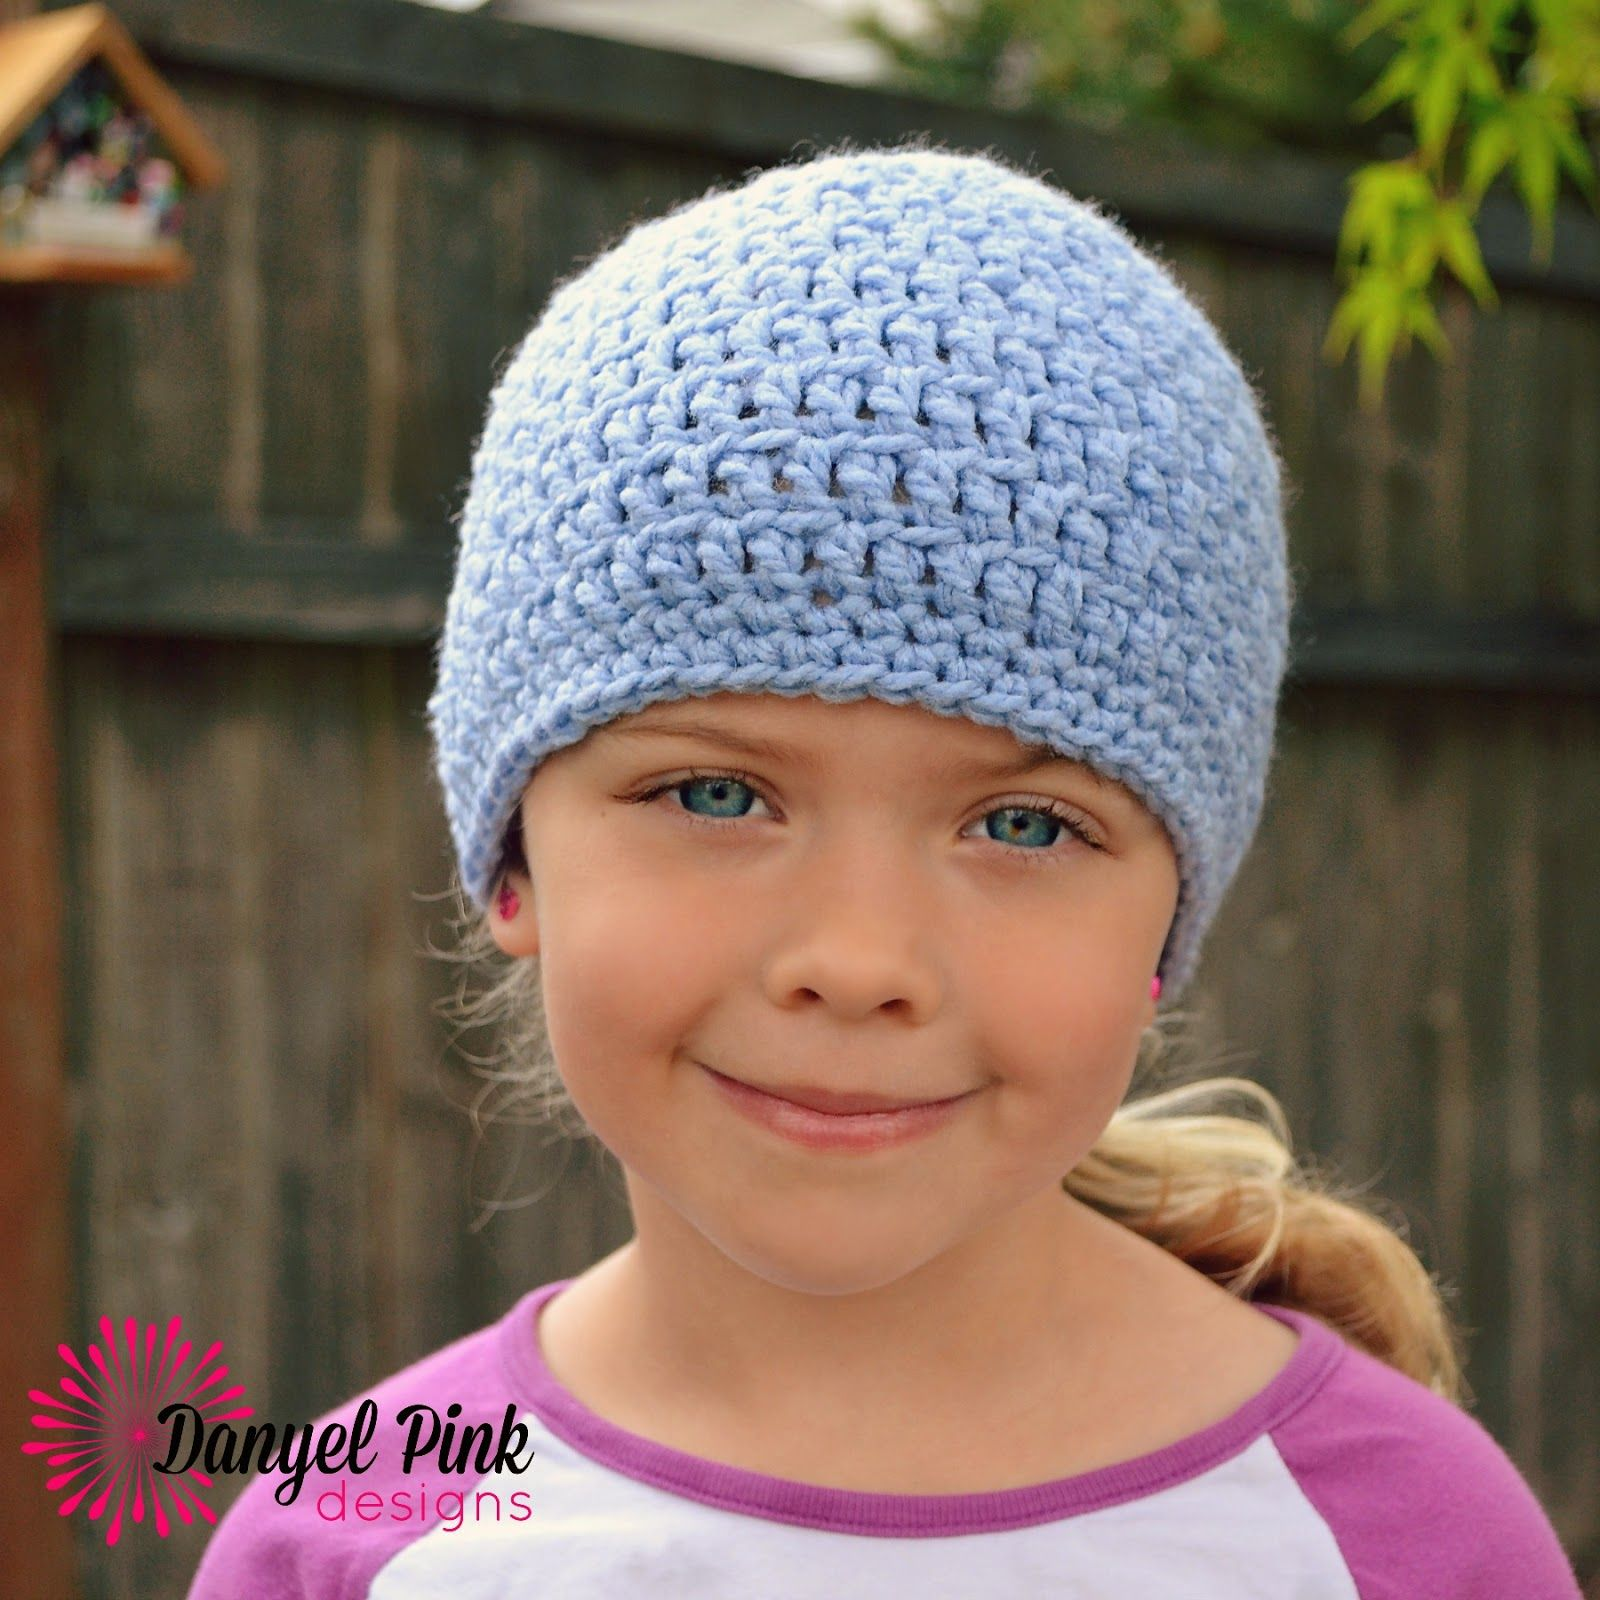 Danyel pink designs crochet pattern perfect dc beanie crafty perfect dc beanie free crochet pattern in 6 sizes by danyel pink designs bankloansurffo Gallery